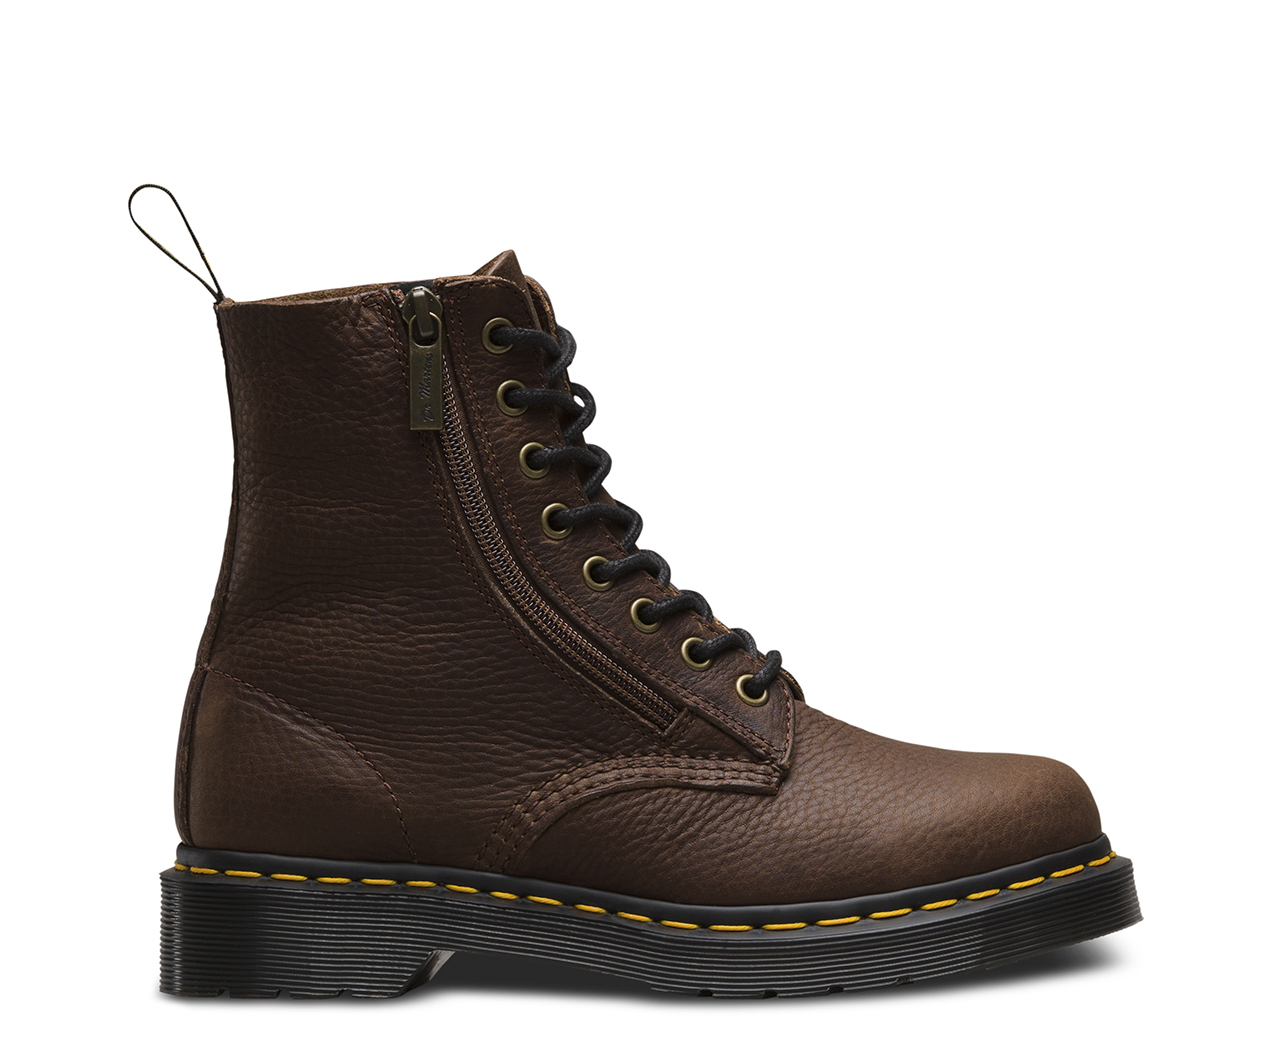 1460 PASCAL W/ZIP GRIZZLY | Women's Boots | The Official ...